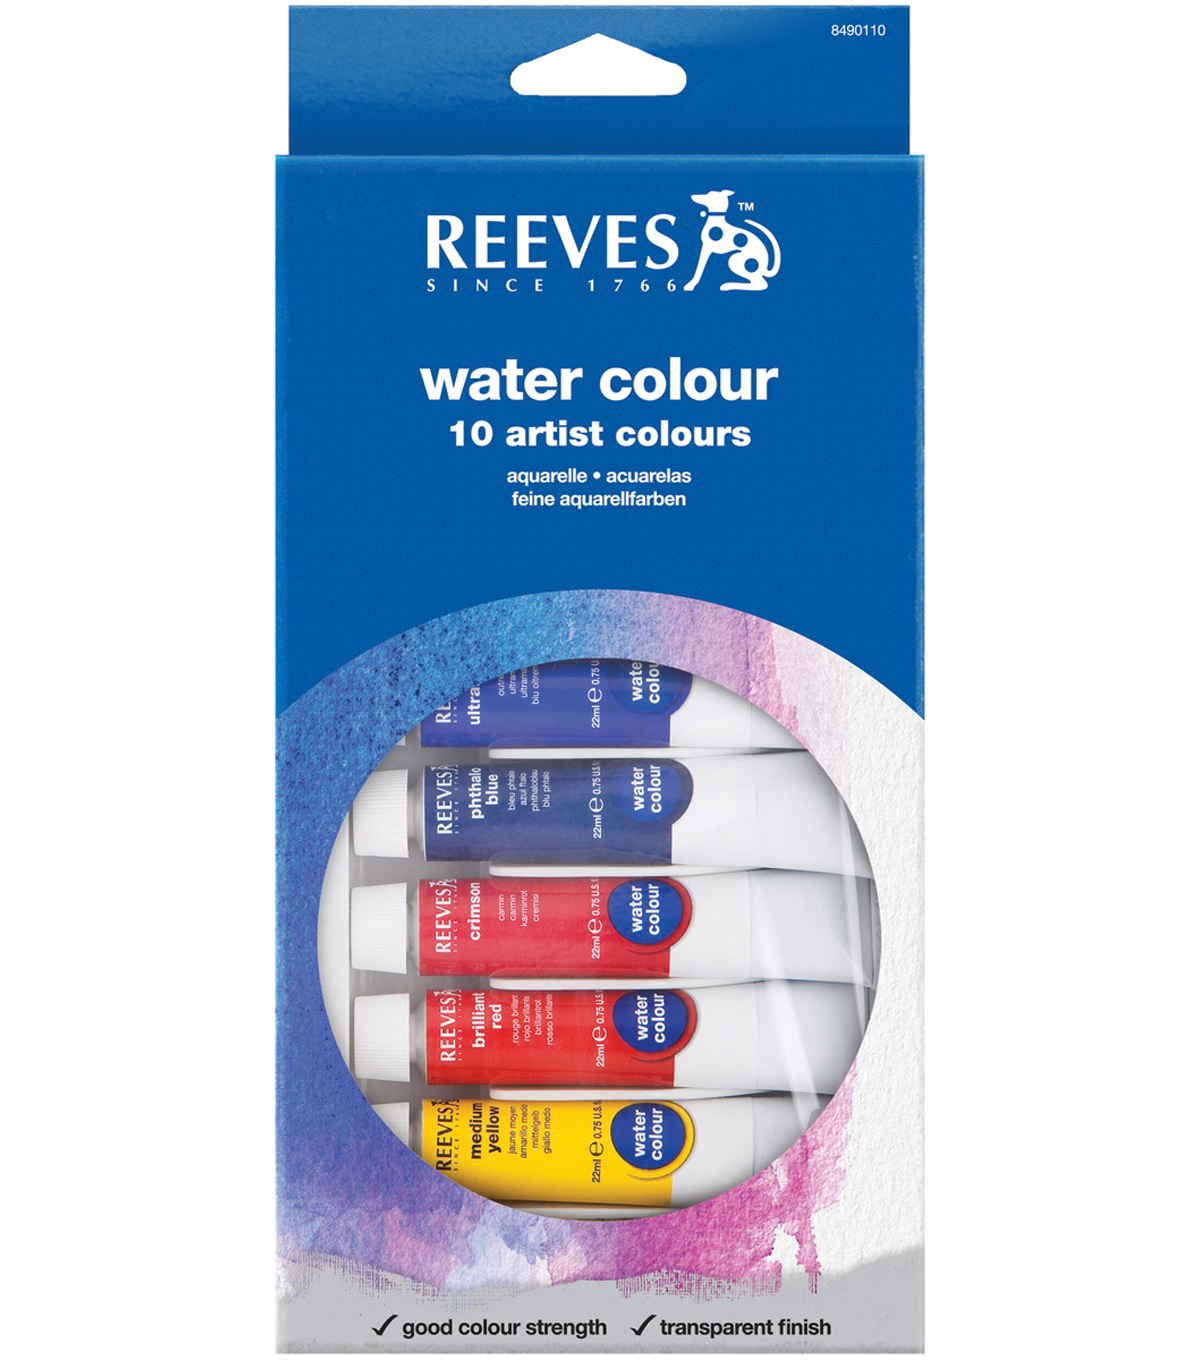 Reeves Water Colour Paints 22ml 10 Pack-Assorted Colors